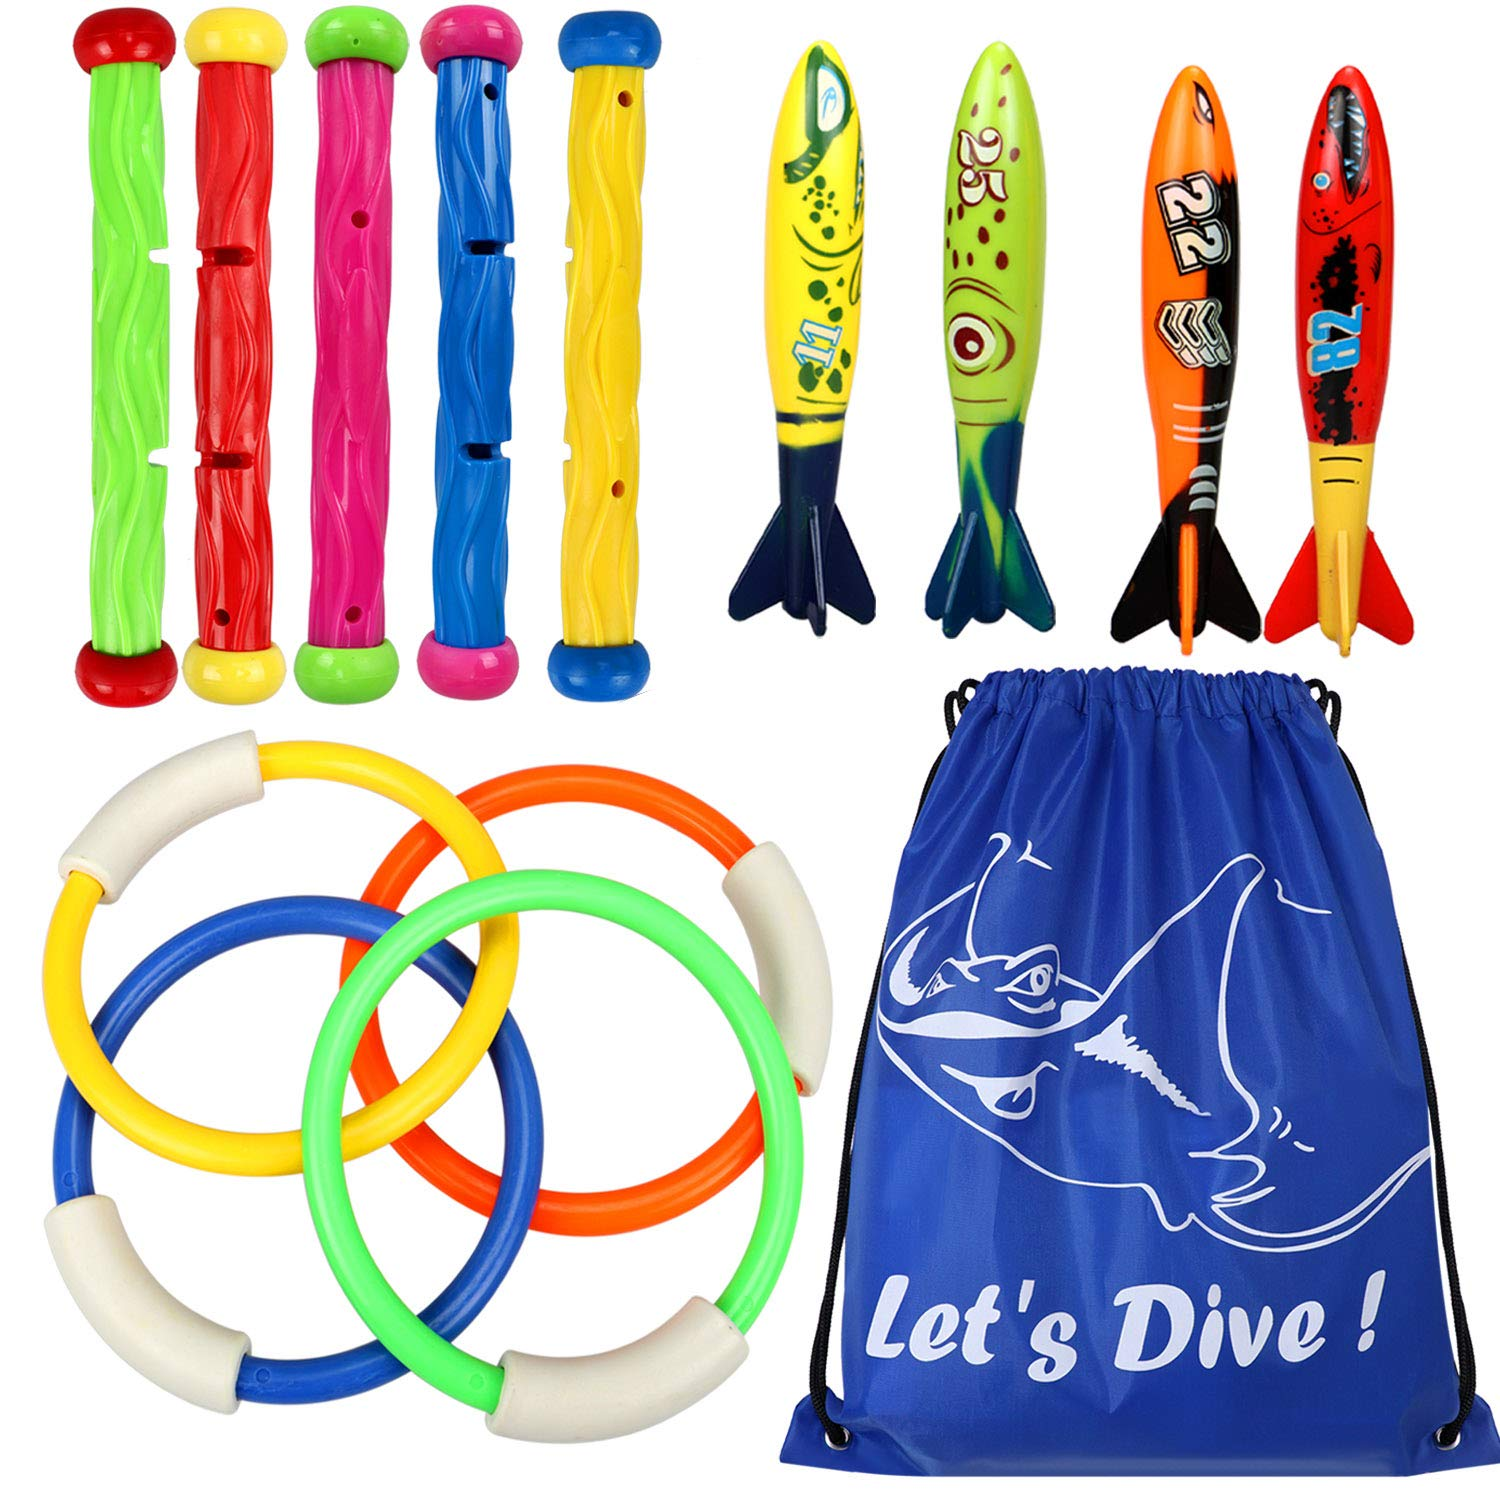 Underwater Swimming Diving Pool Toy Rings 4 pcs, Diving Sticks 5 pcs and Torpedo Bandits 4 pcs Sets Under Water Games Training Gift for Boys Girls by Toyssa